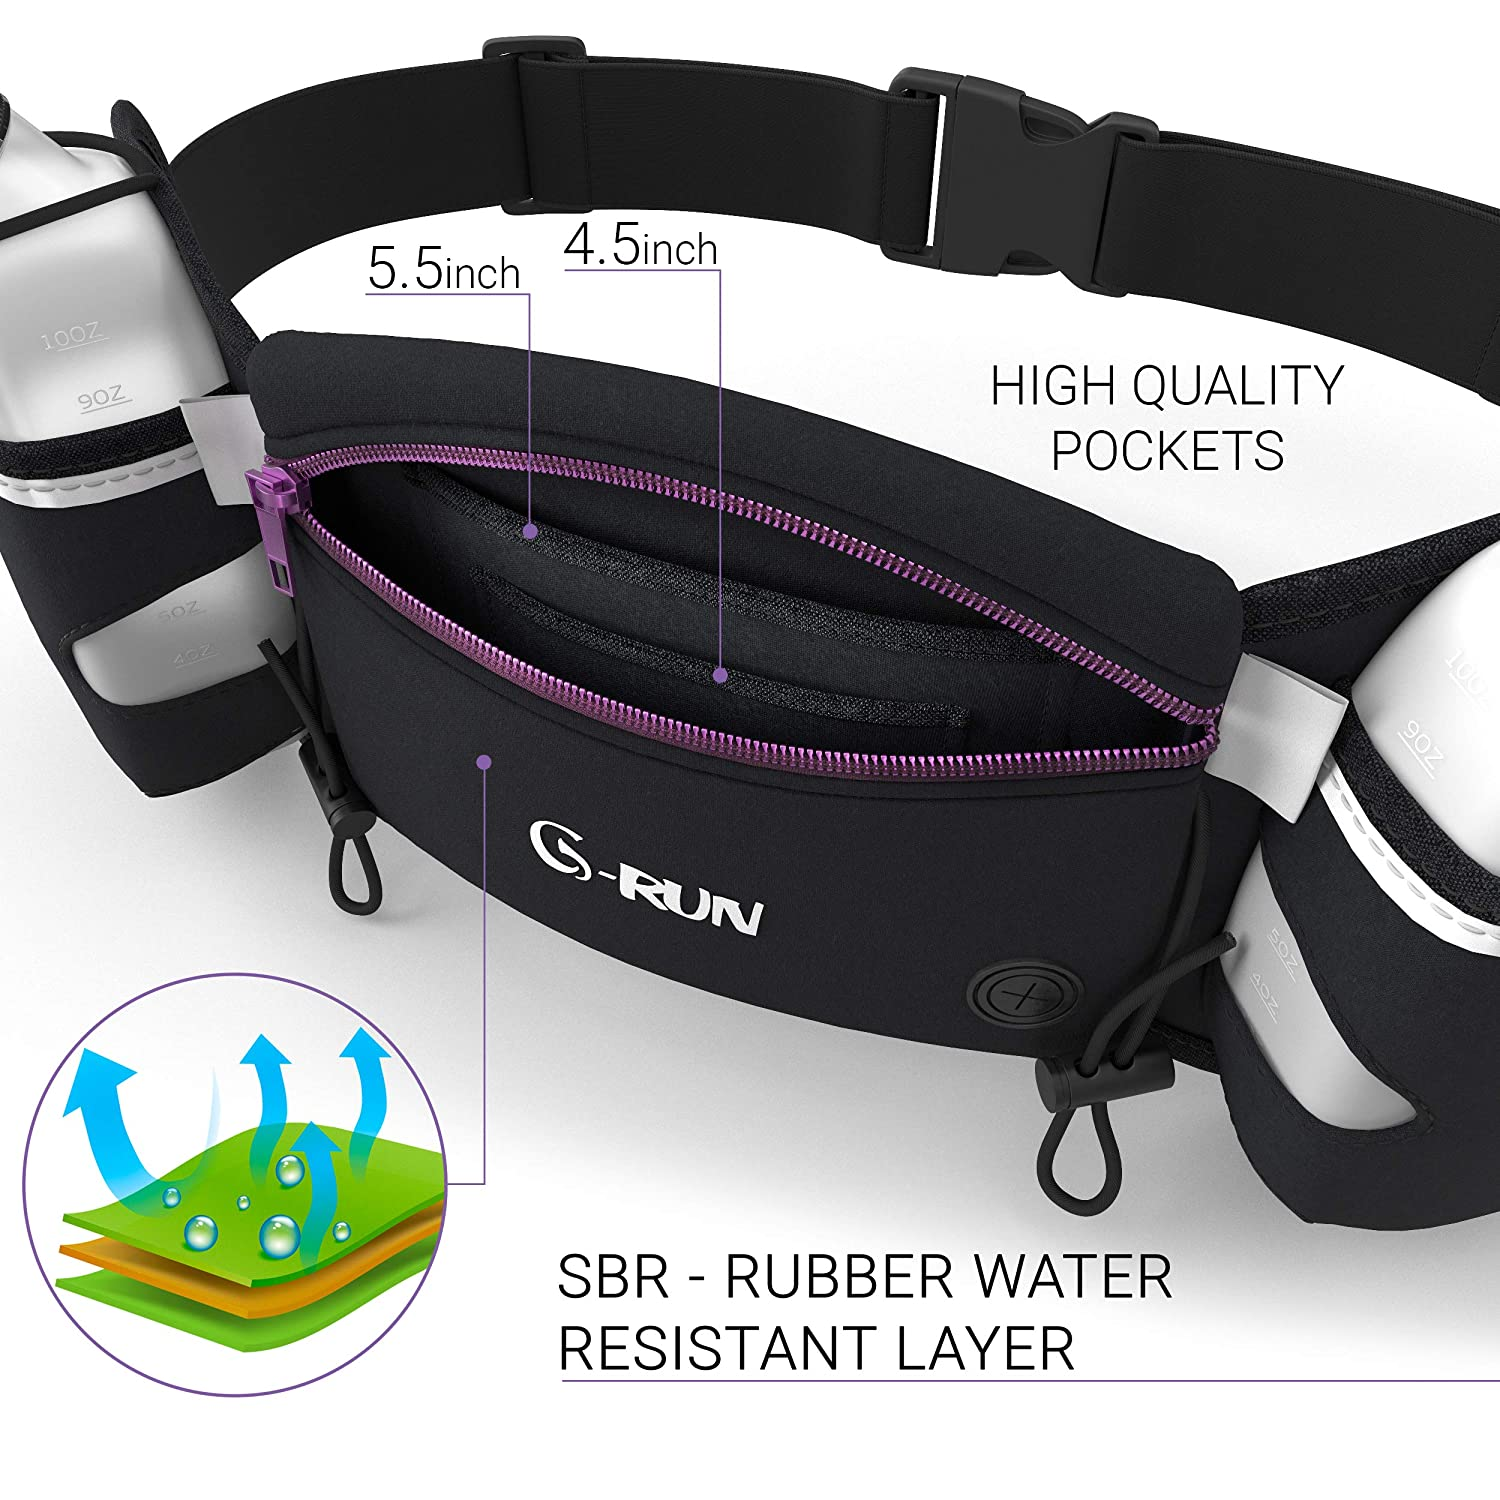 Jogging Waist Pouch/… Fuel Marathon Race Pack for Runners G-RUN Hydration Running Belt with Bottles iPhone Belt for Any Phone Size Water Belts for Woman and Men